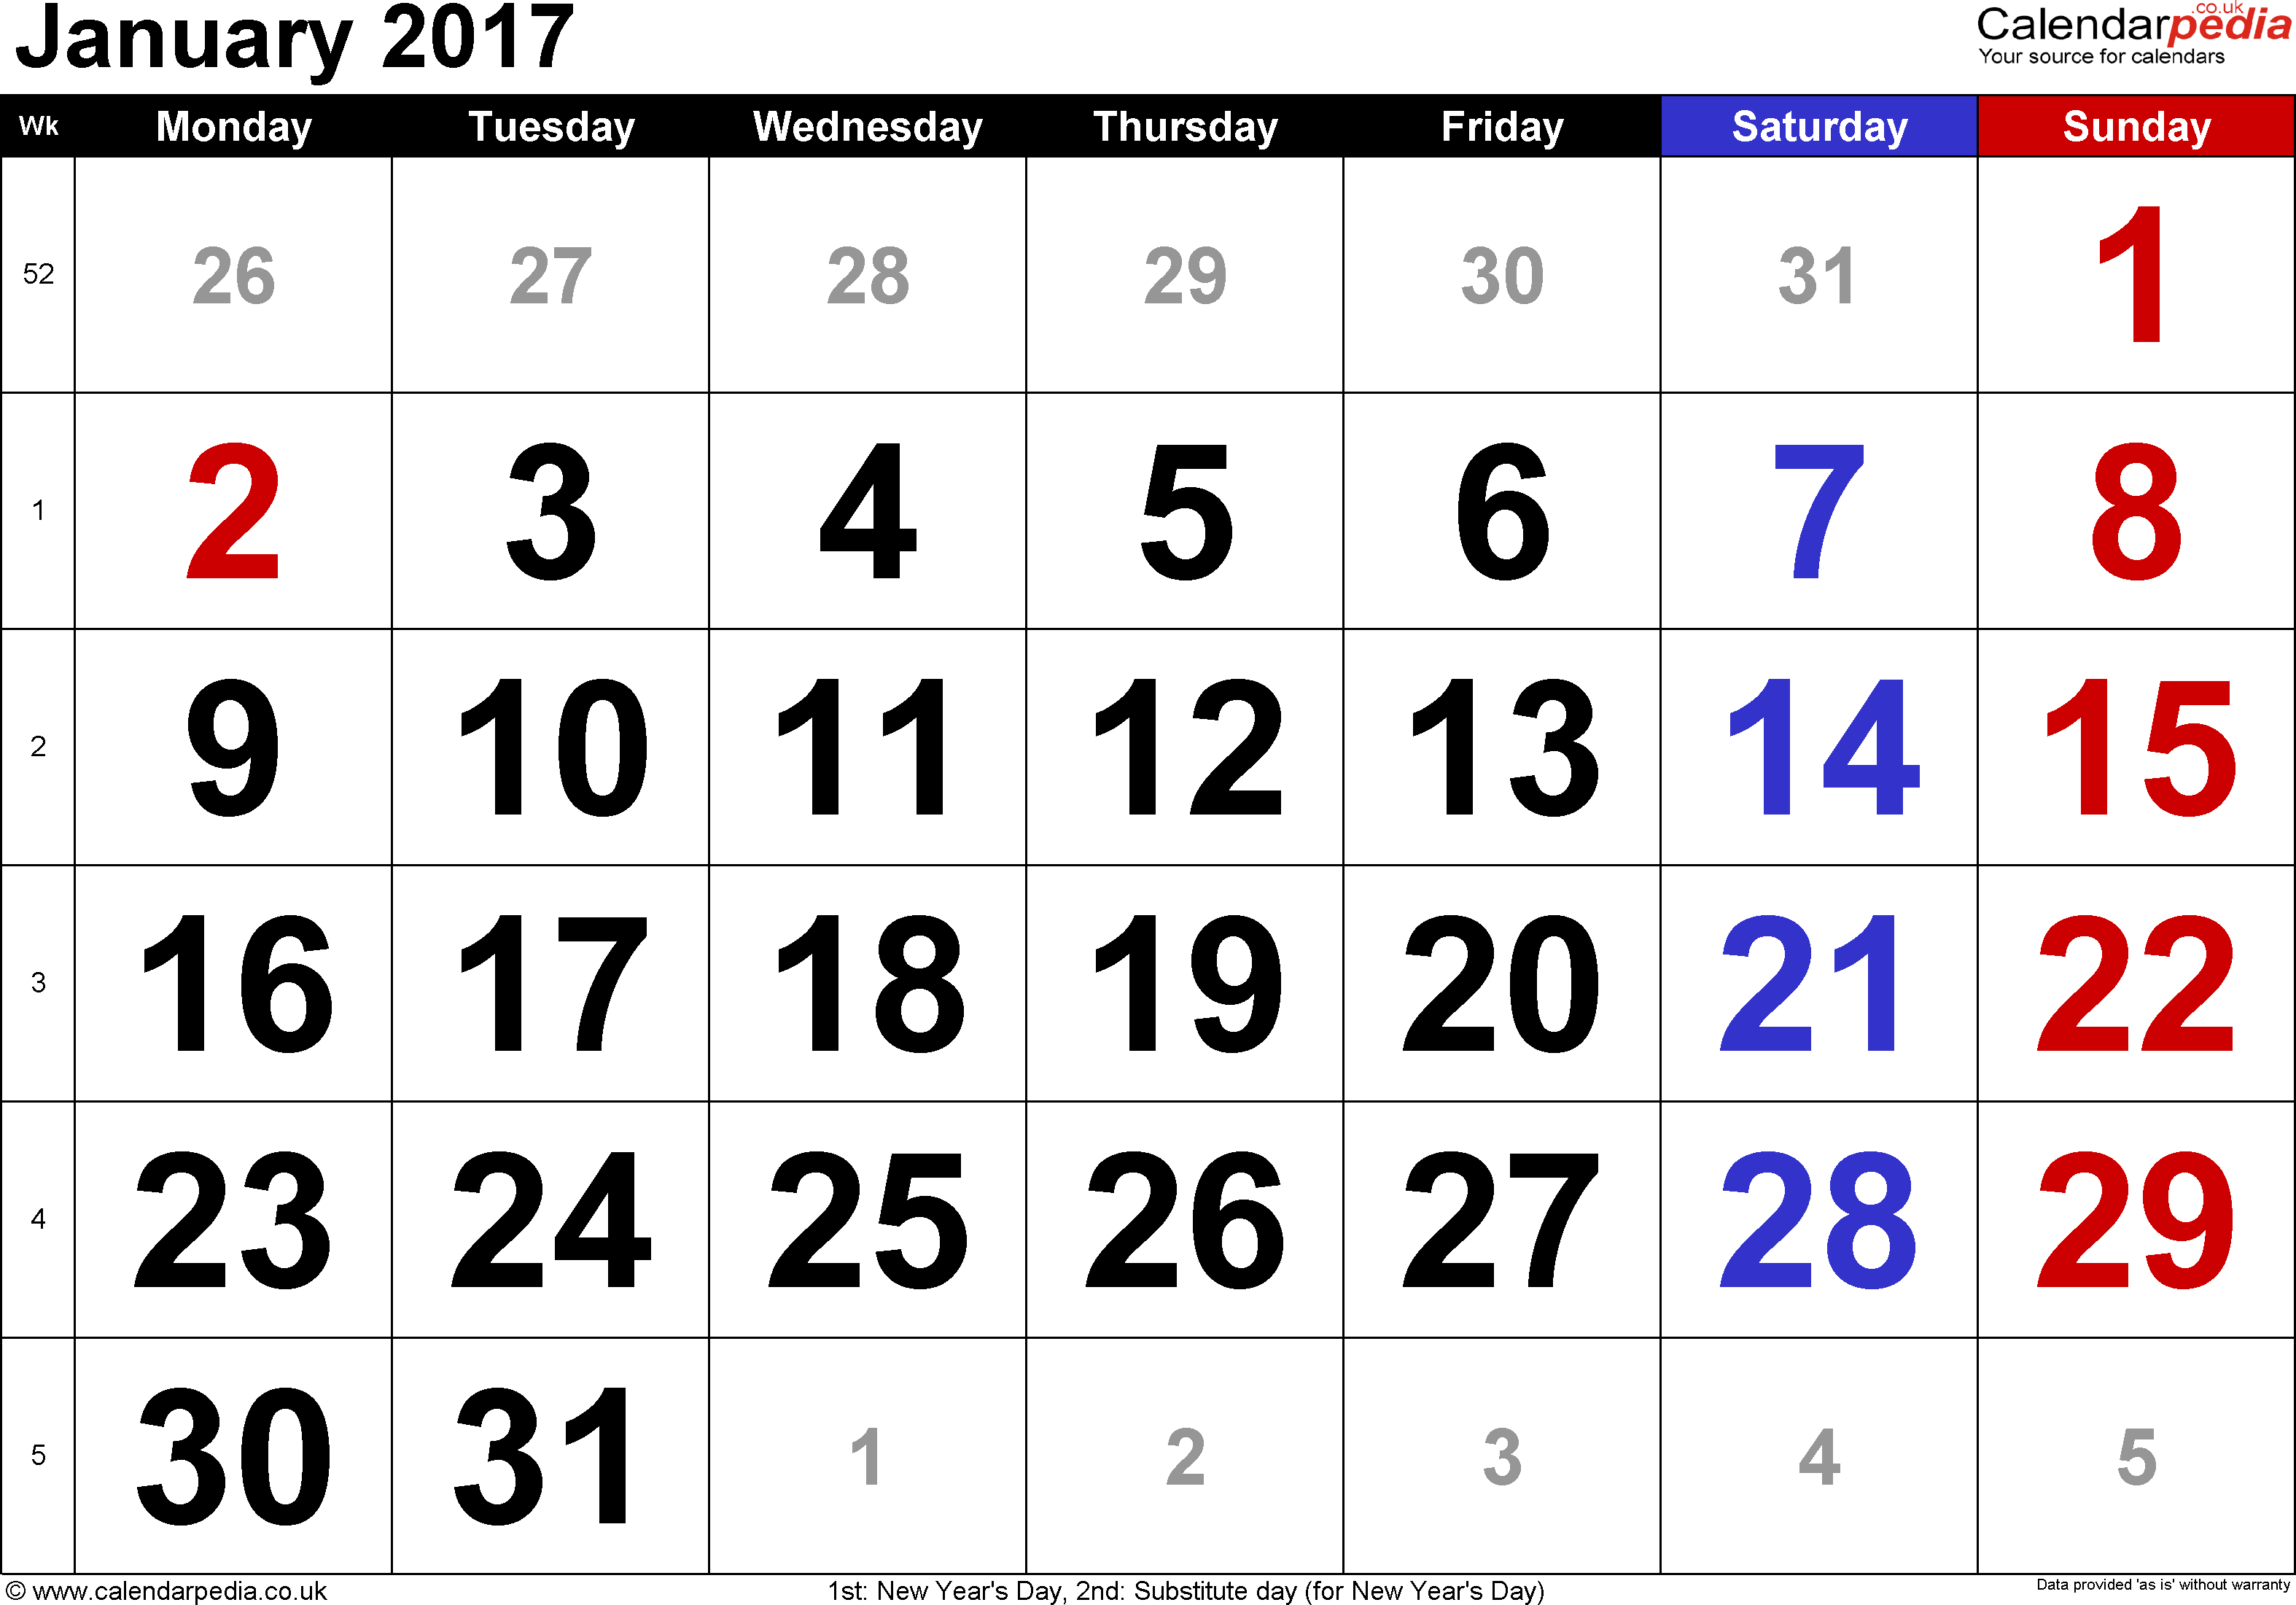 Calendar January 2017, landscape orientation, large numerals, 1 page, with UK bank holidays and week numbers